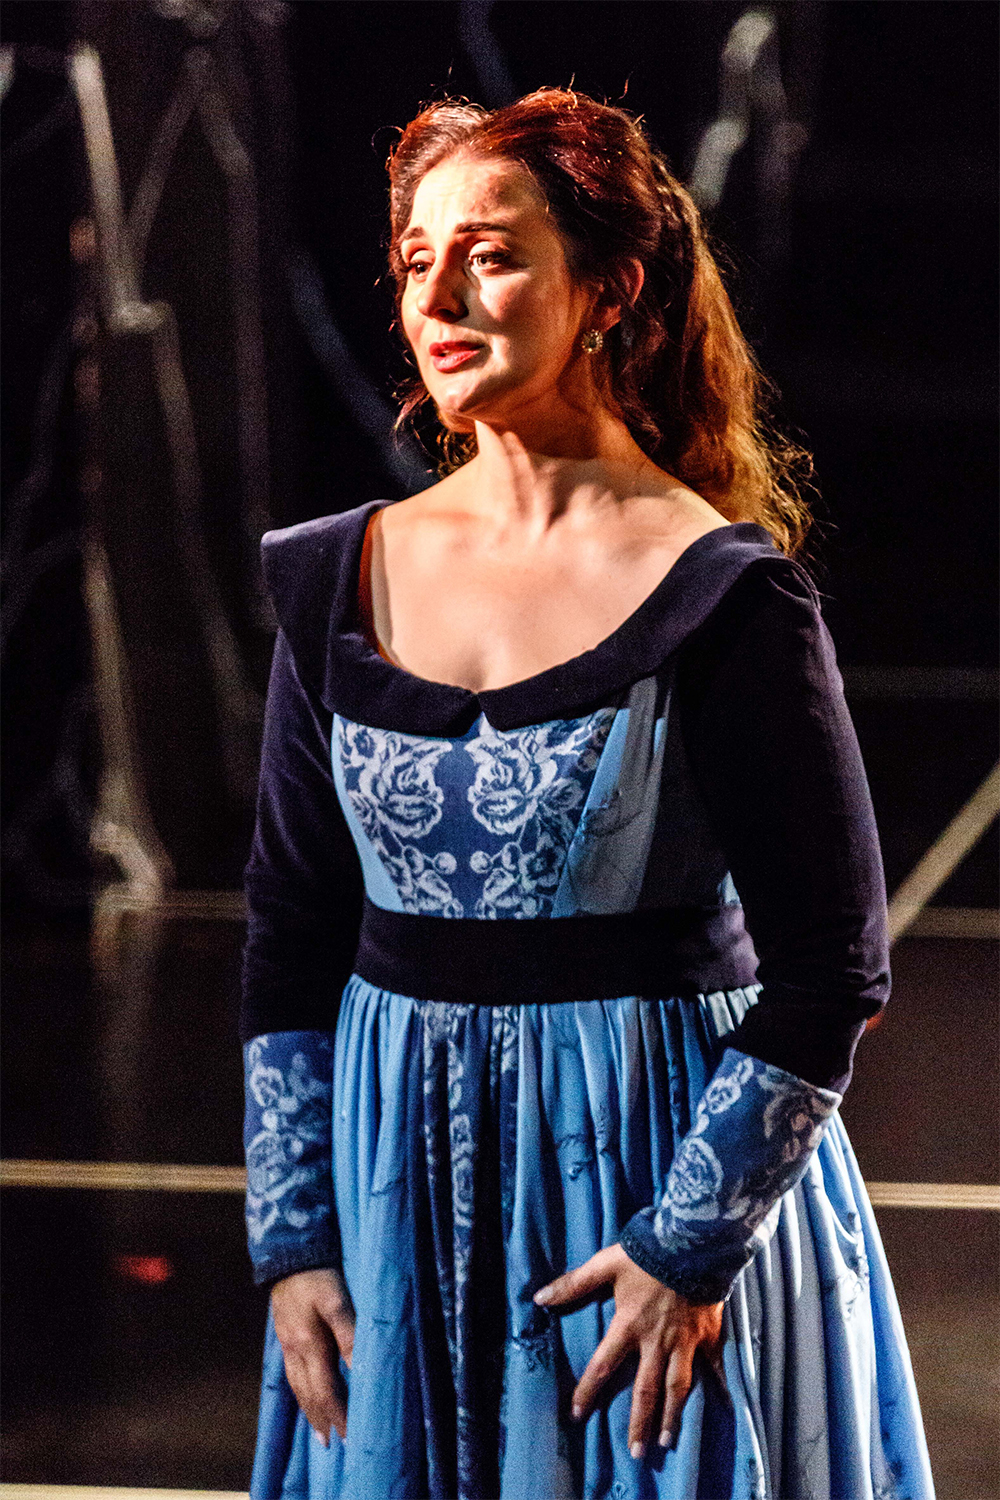 Elena Xanthoudakis as Desdemona (photo by Robins Hall)